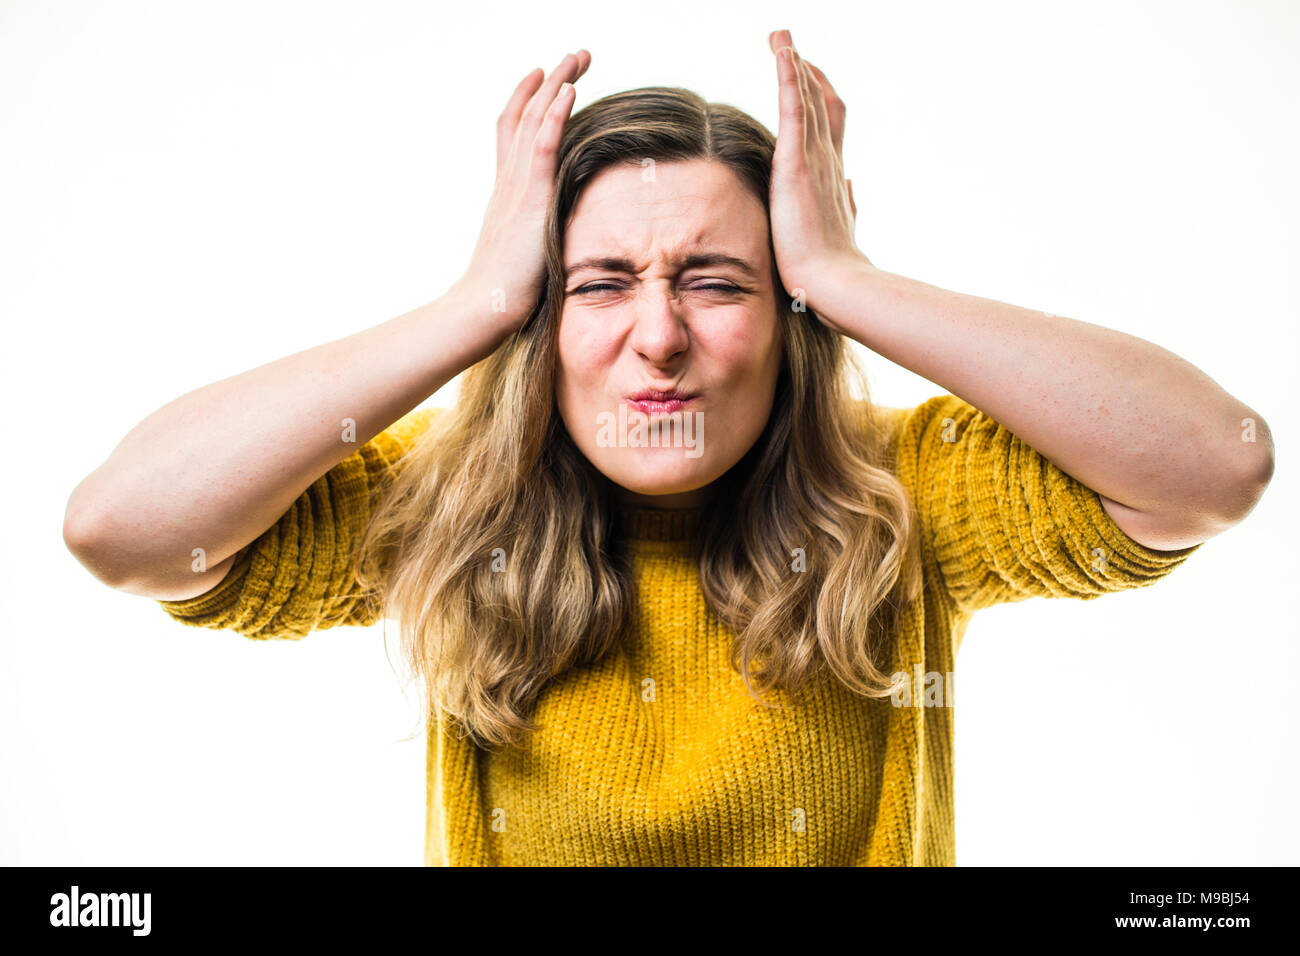 A young Caucasian woman girl pressing the palms of her hands against her head, suffering headache head pain migraine , against a white background, UK - Stock Image